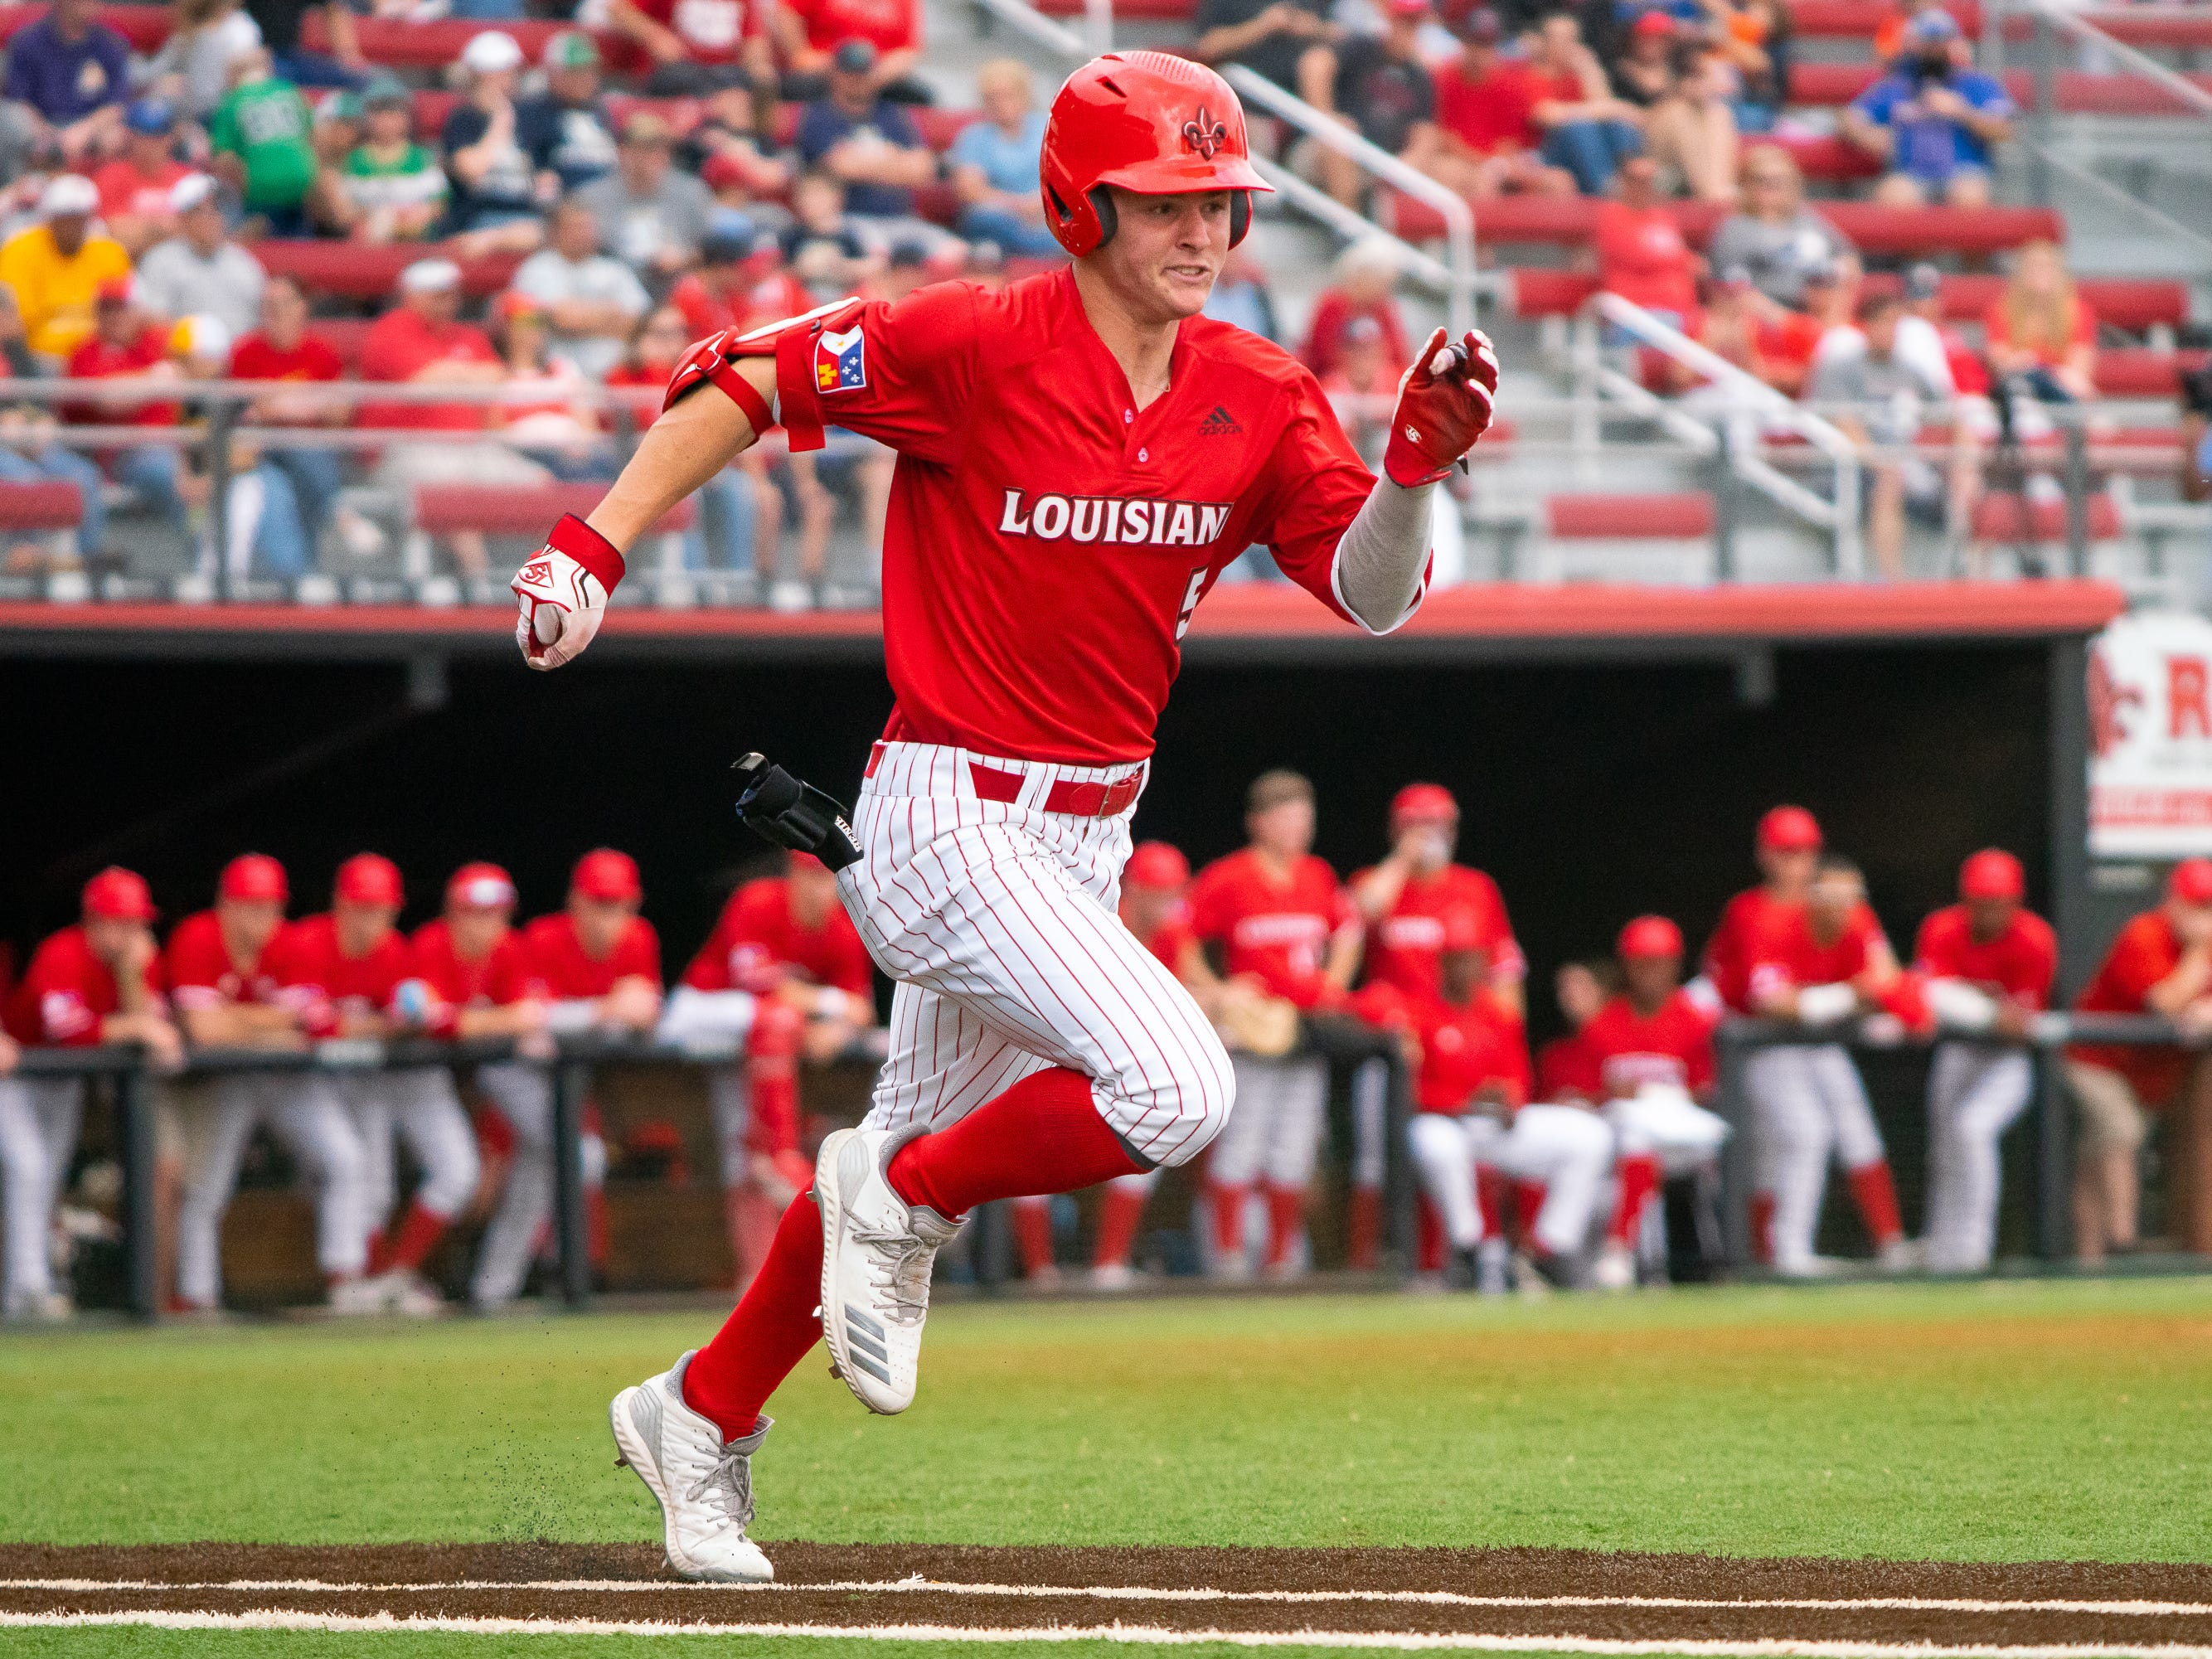 UL's Hayden Cantrelle sprints to first base as the Ragin' Cajuns take on the Loyola-Marymount Lions at M.L. Tigue Moore Field on Saturday, March 9, 2019.